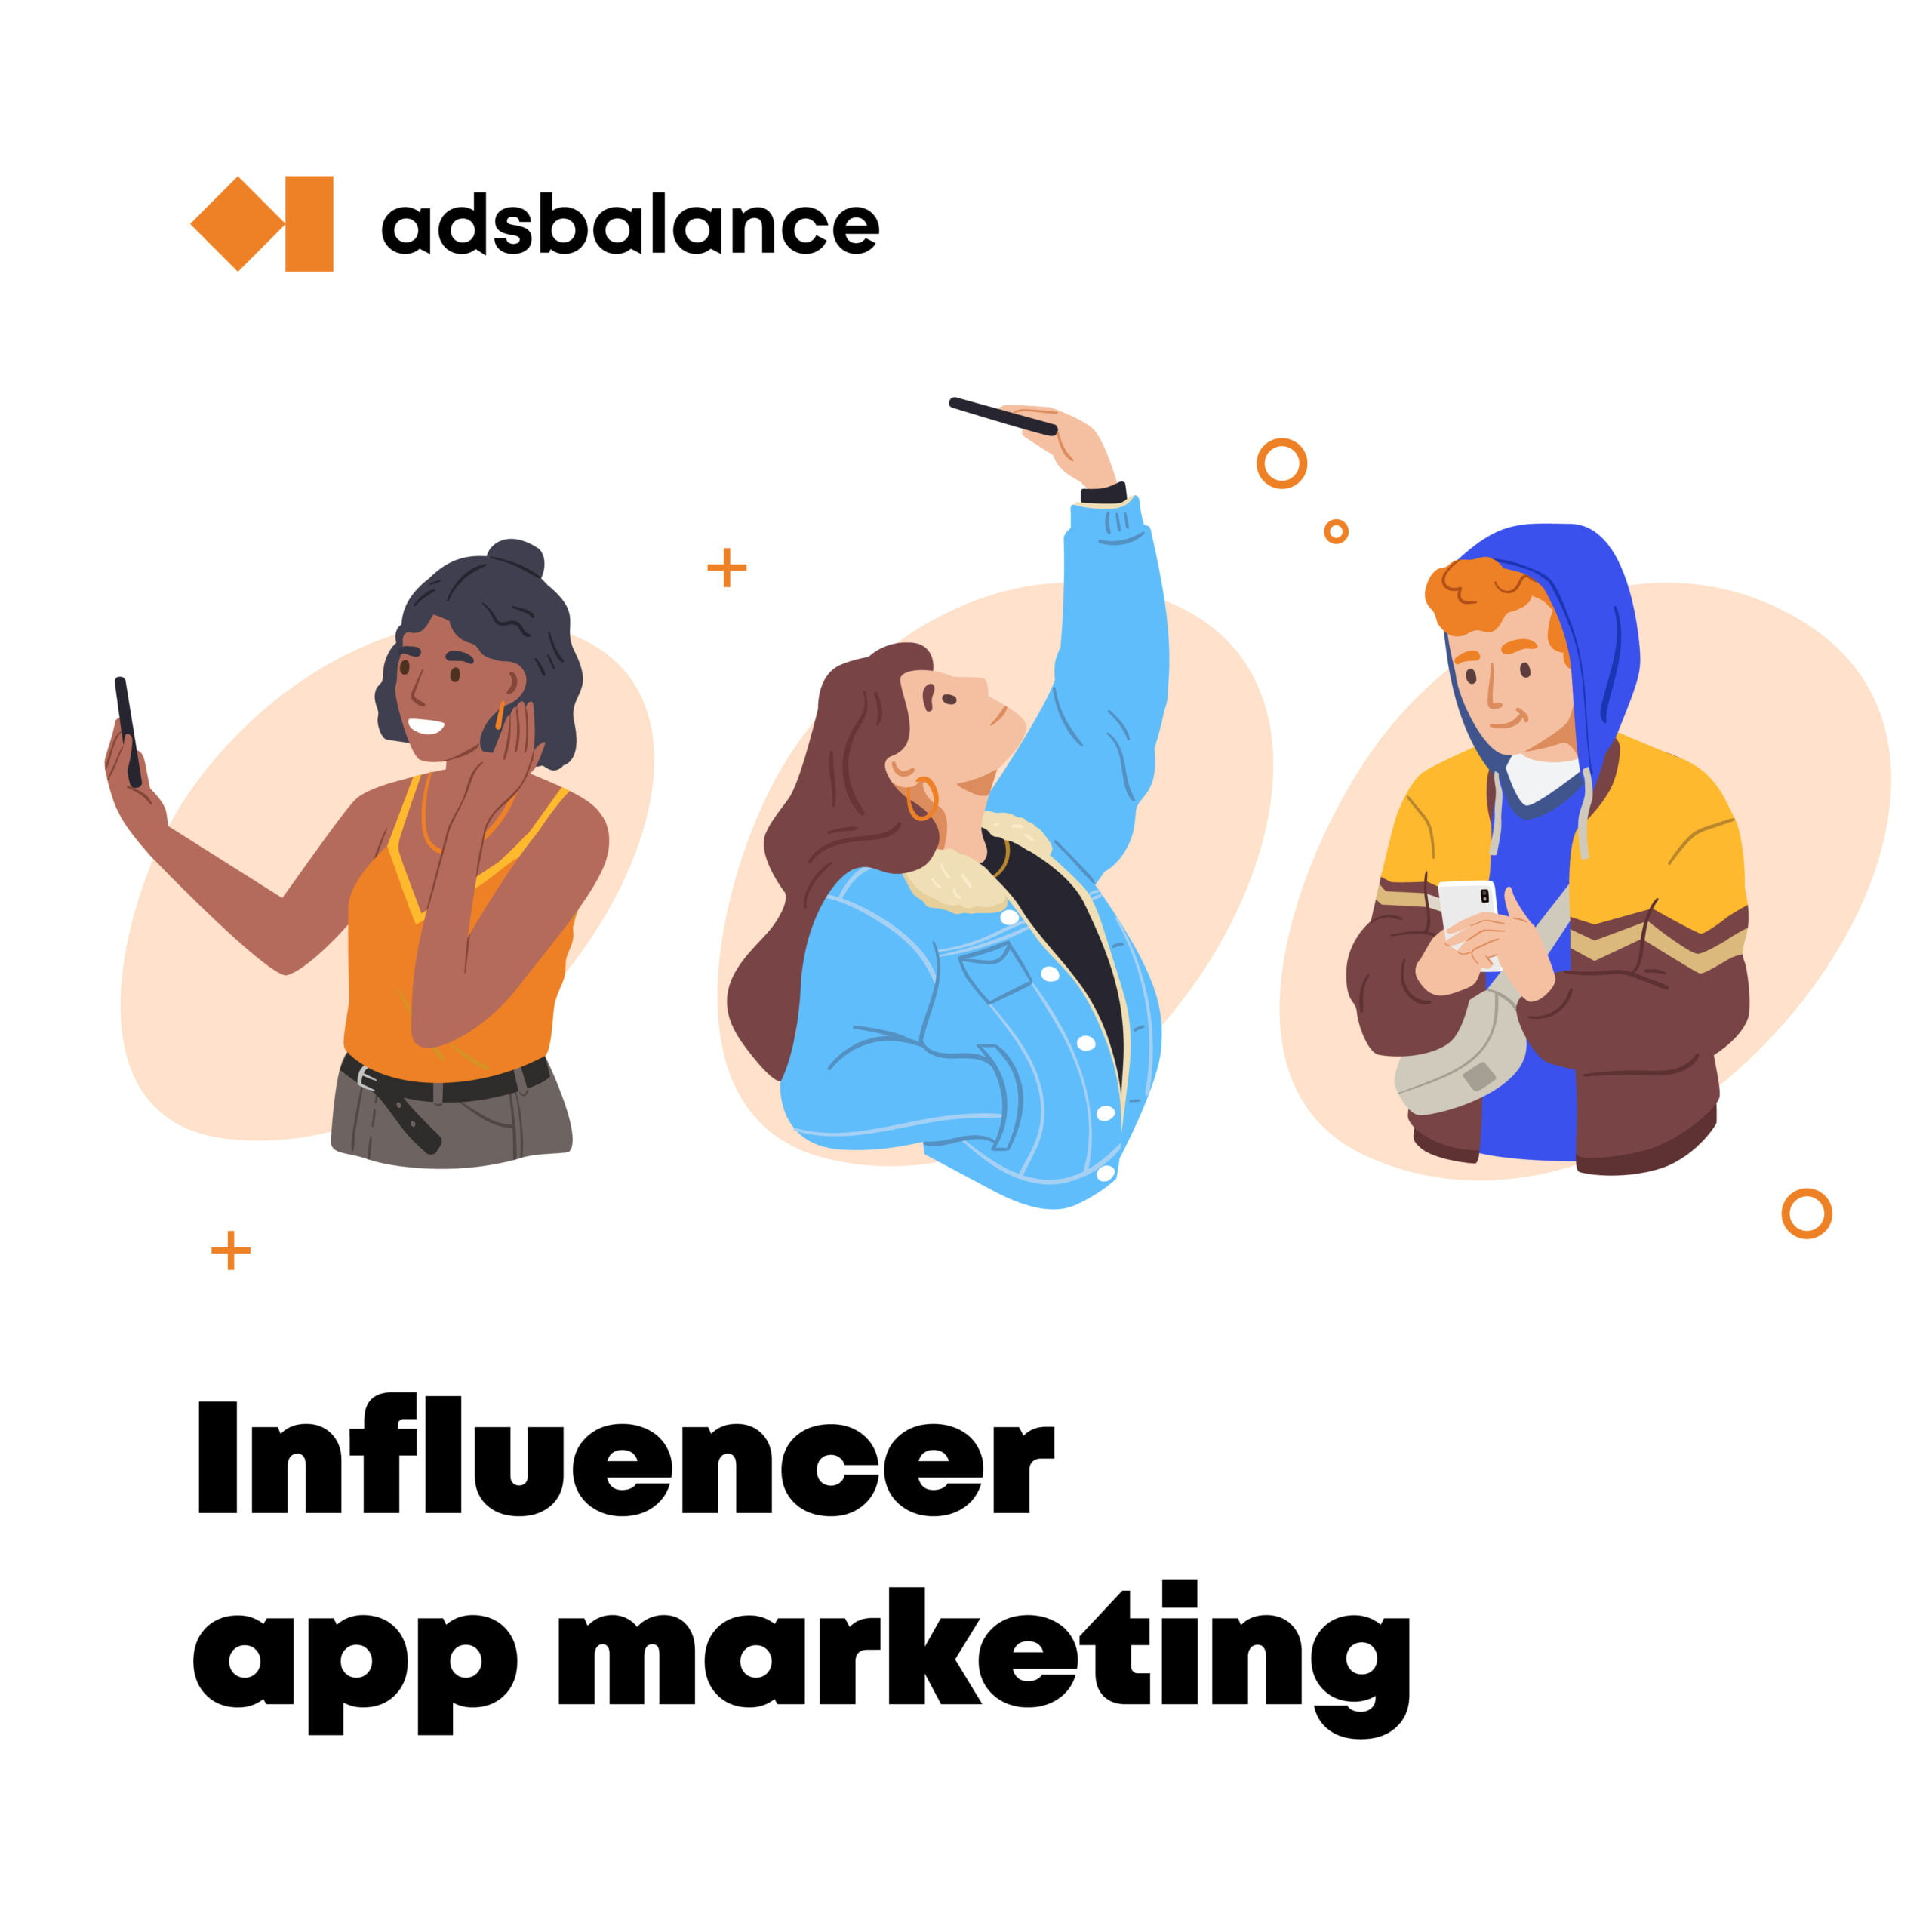 How to do influencer app marketing